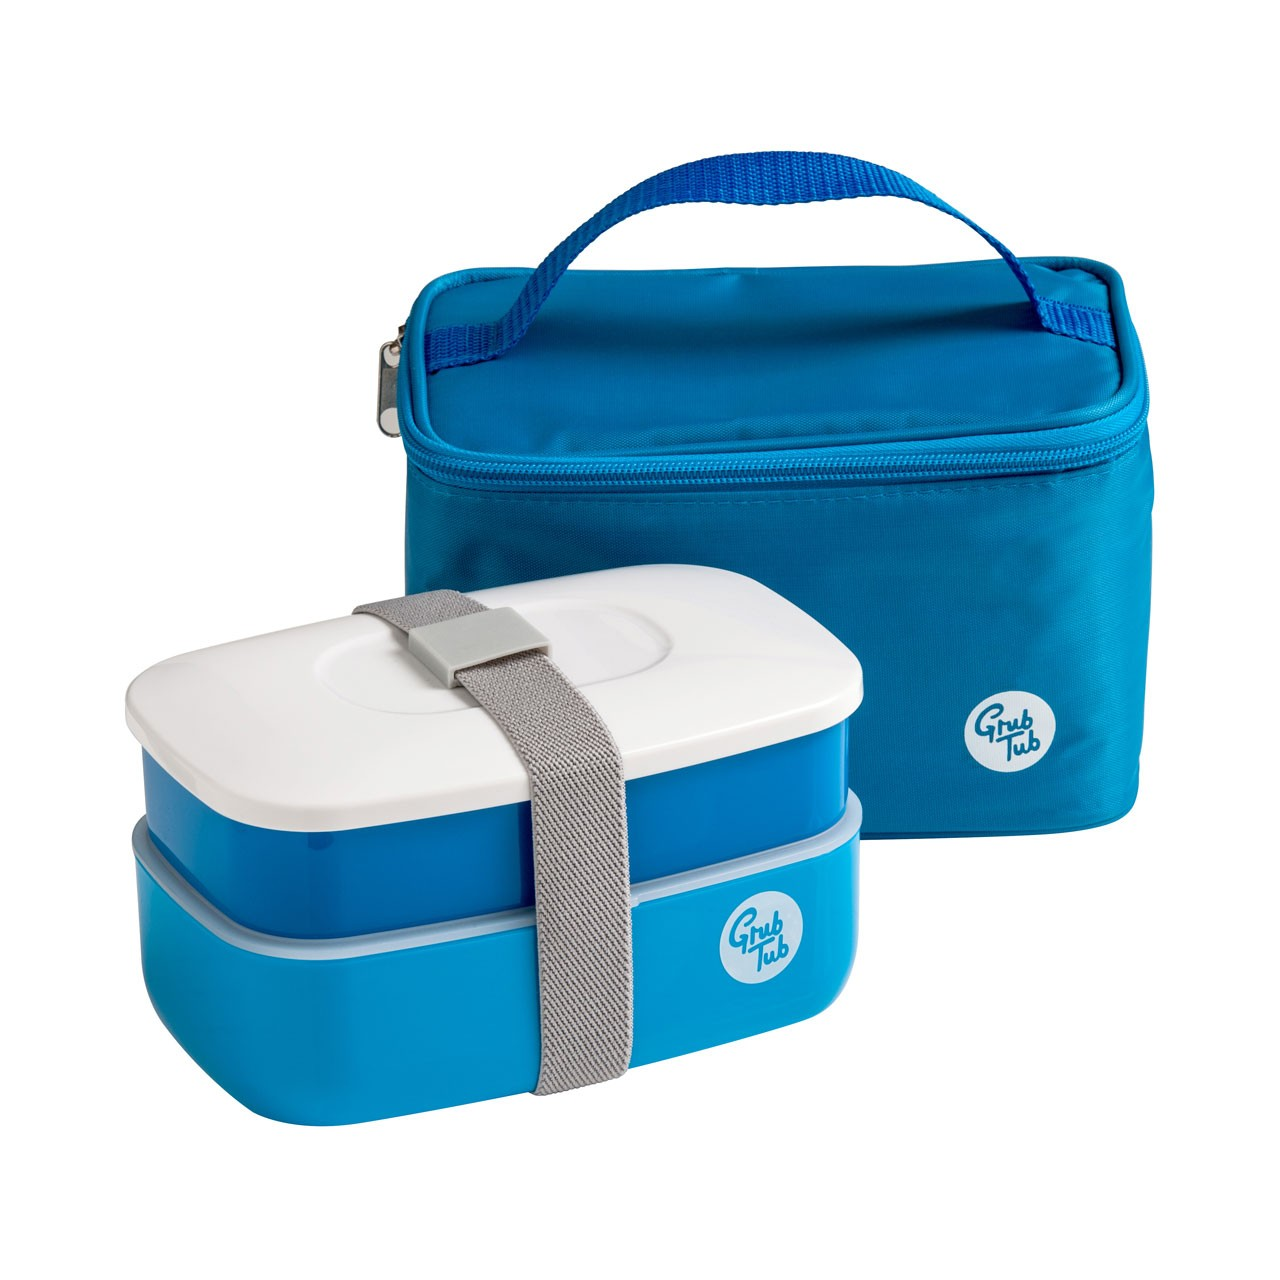 Grub Tub Lunch Box with 2 Containers/Cool Bag/Cutlery - Blue